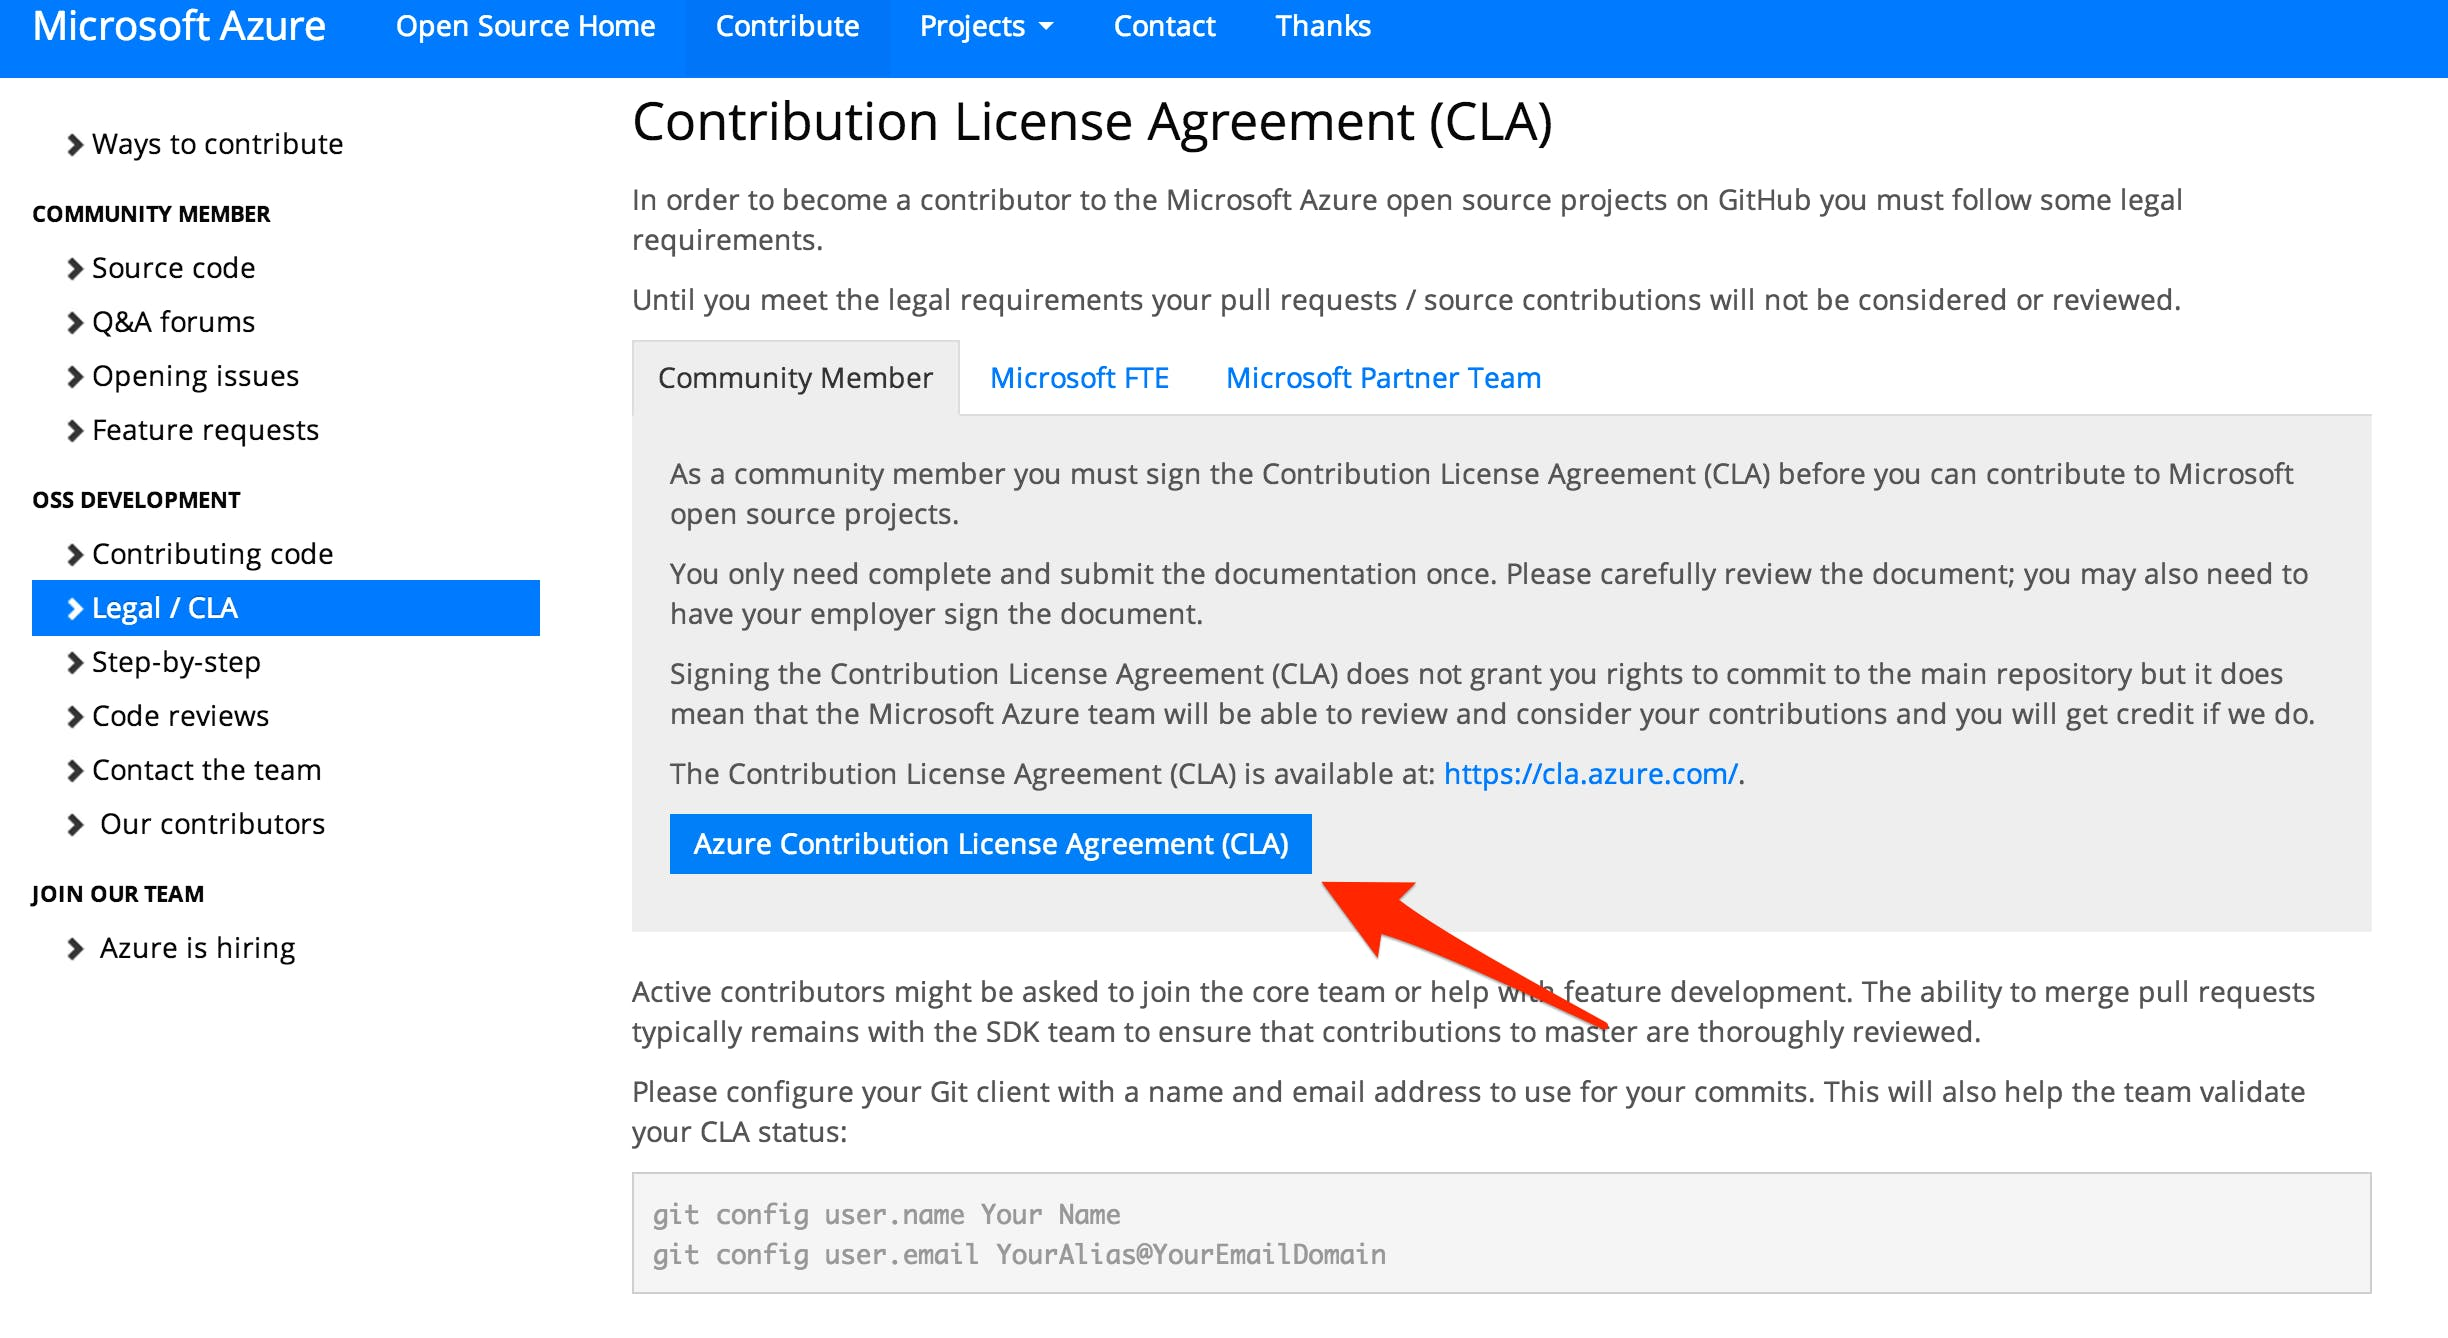 Open_Source_Contribution_Guidelines_-_Microsoft_Azure_Open_Source.png